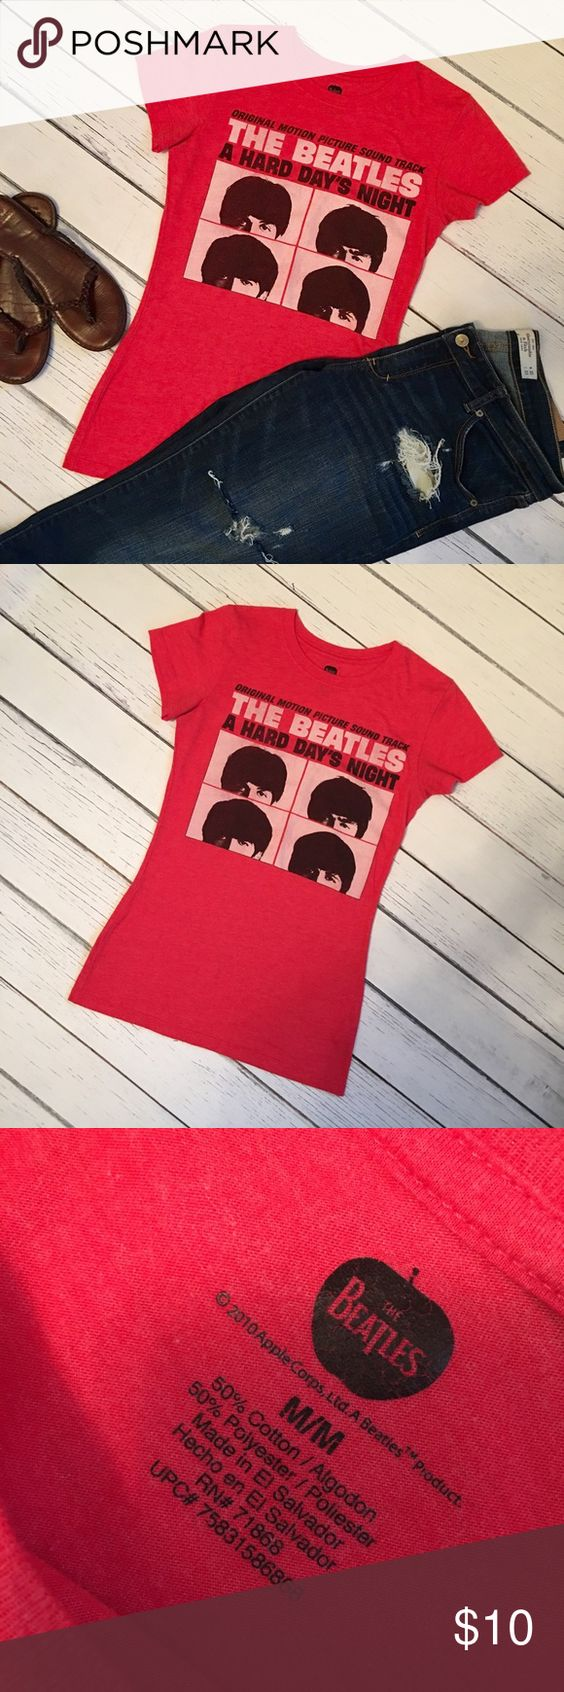 Beatles T-Shirt Size M 50/50 soft red heather cotton/poly Beatles t-shirt in perfect new condition. Slim, longer fit. Smoke free/pet free! Tops Tees - Short Sleeve